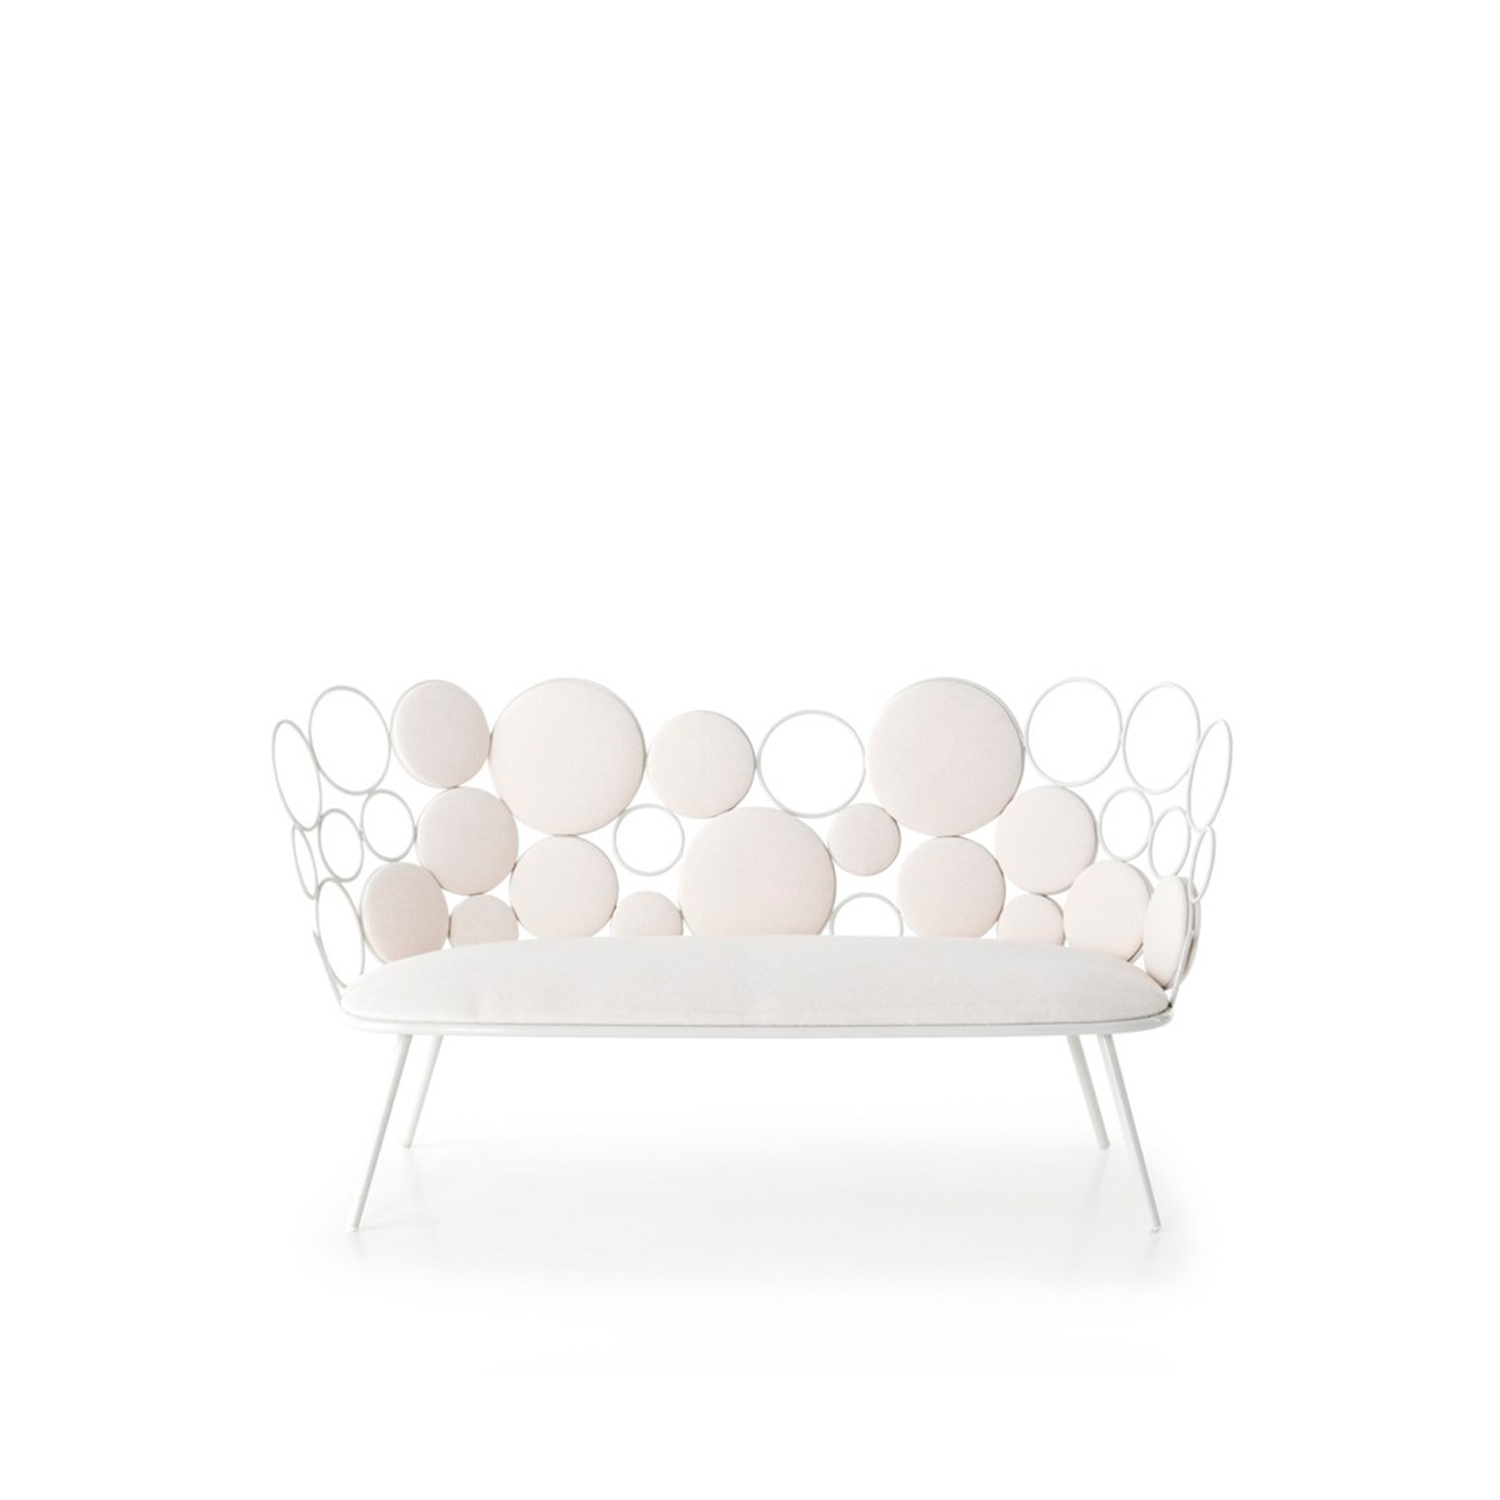 Grace Garden Sofa - Grace is a fabric and iron garden sofa, part of the homonymous collection.‎